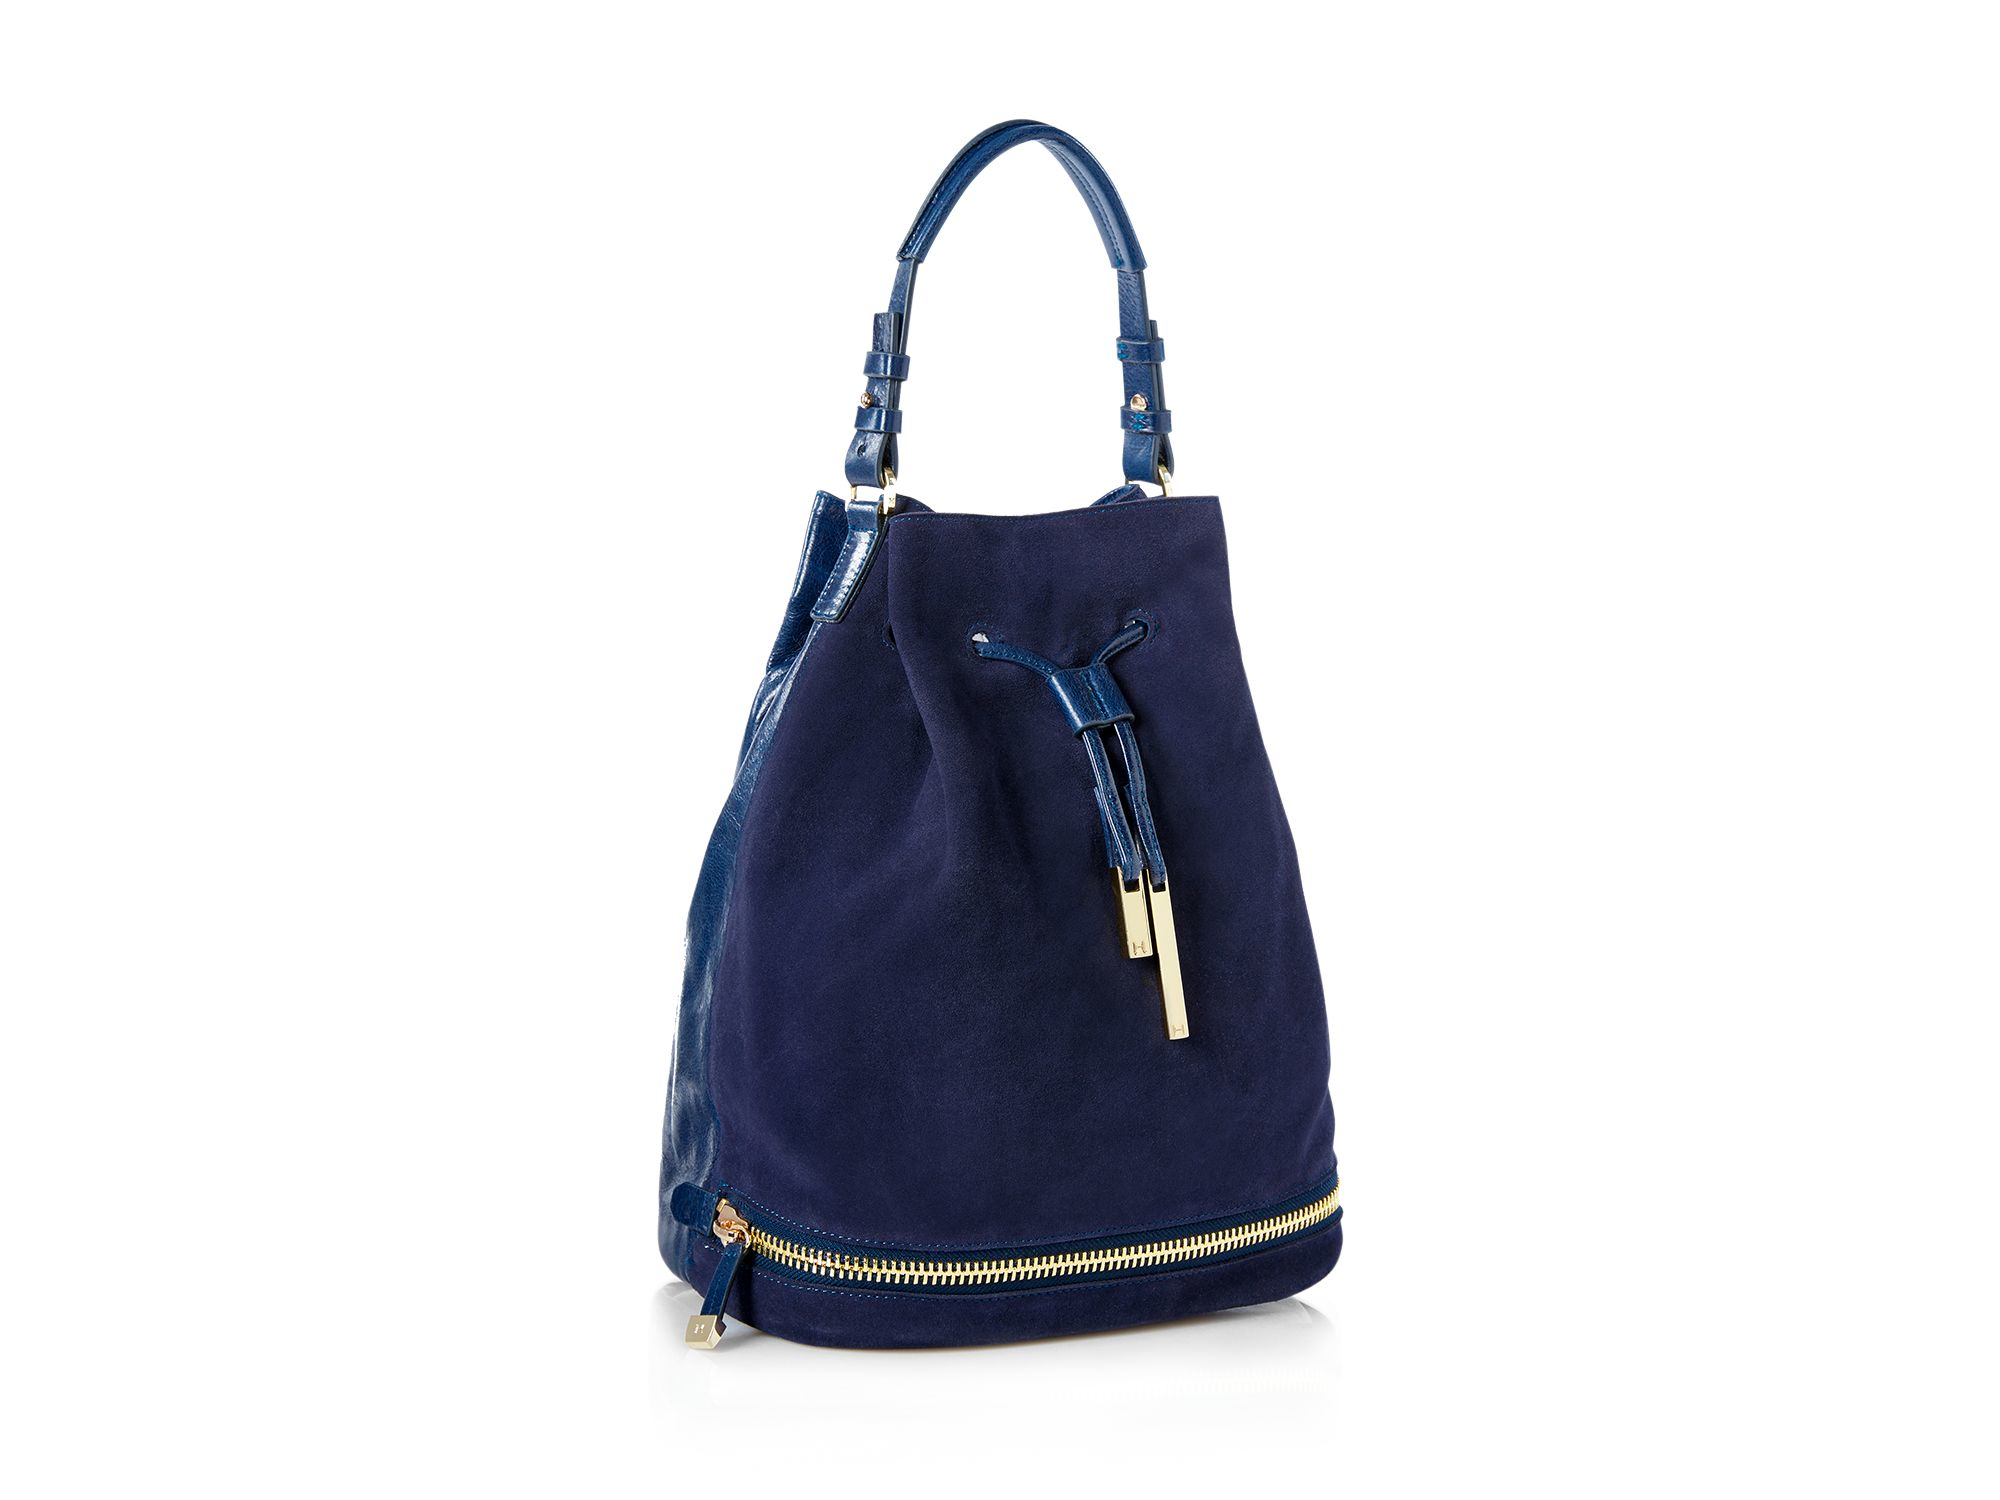 319a340f59 Lyst - Halston Large Top Handle Suede Bucket Bag in Blue